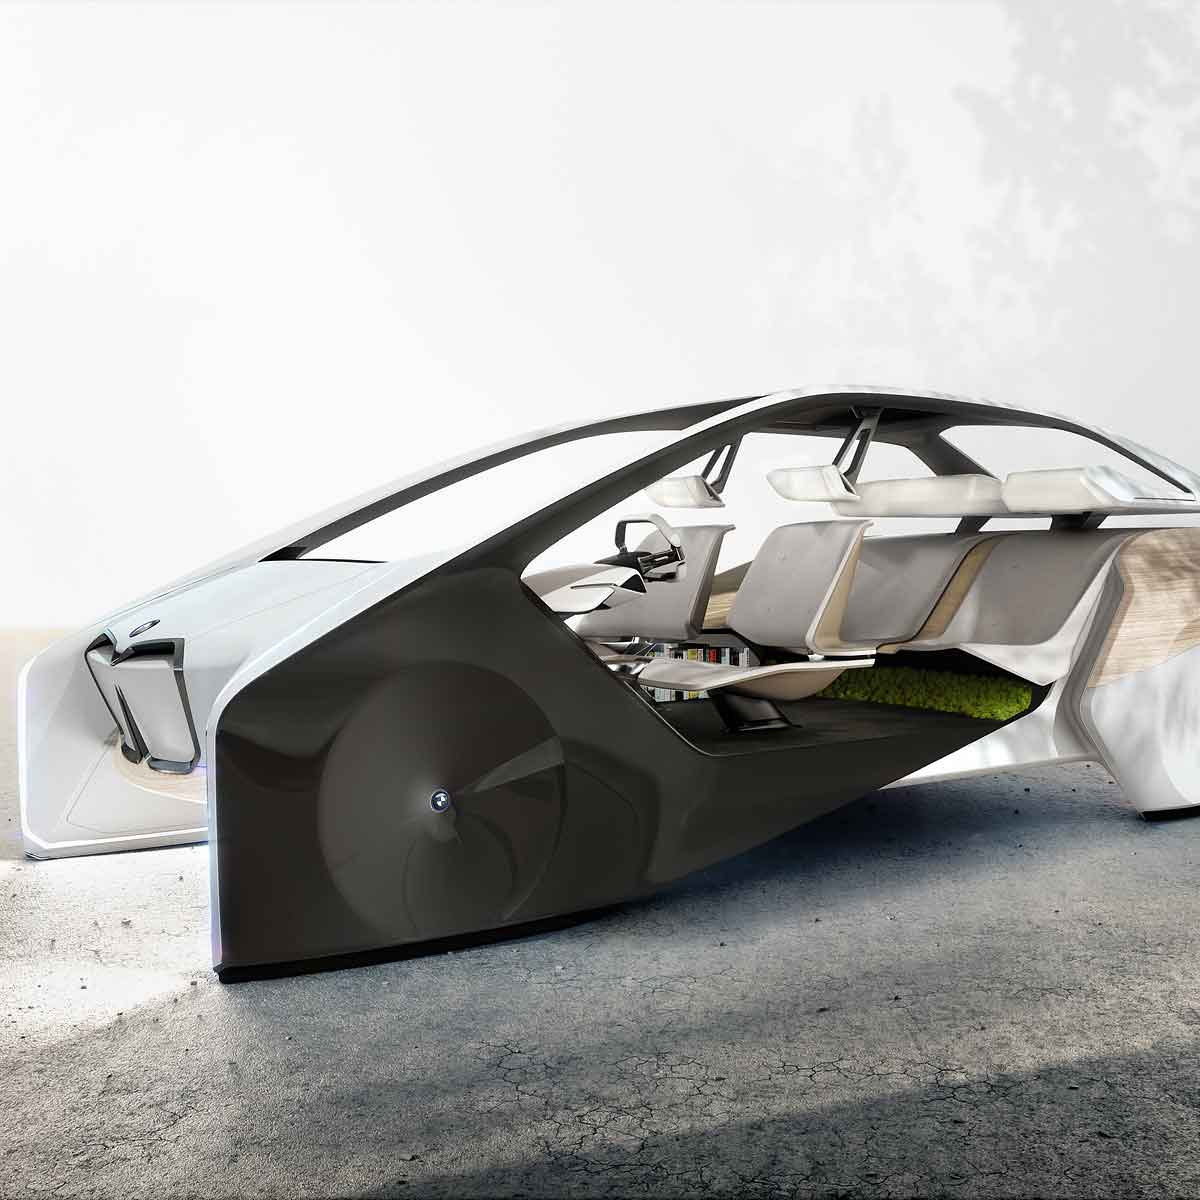 BMW Unveils BMW i Inside Future Sculpture at CES 2017